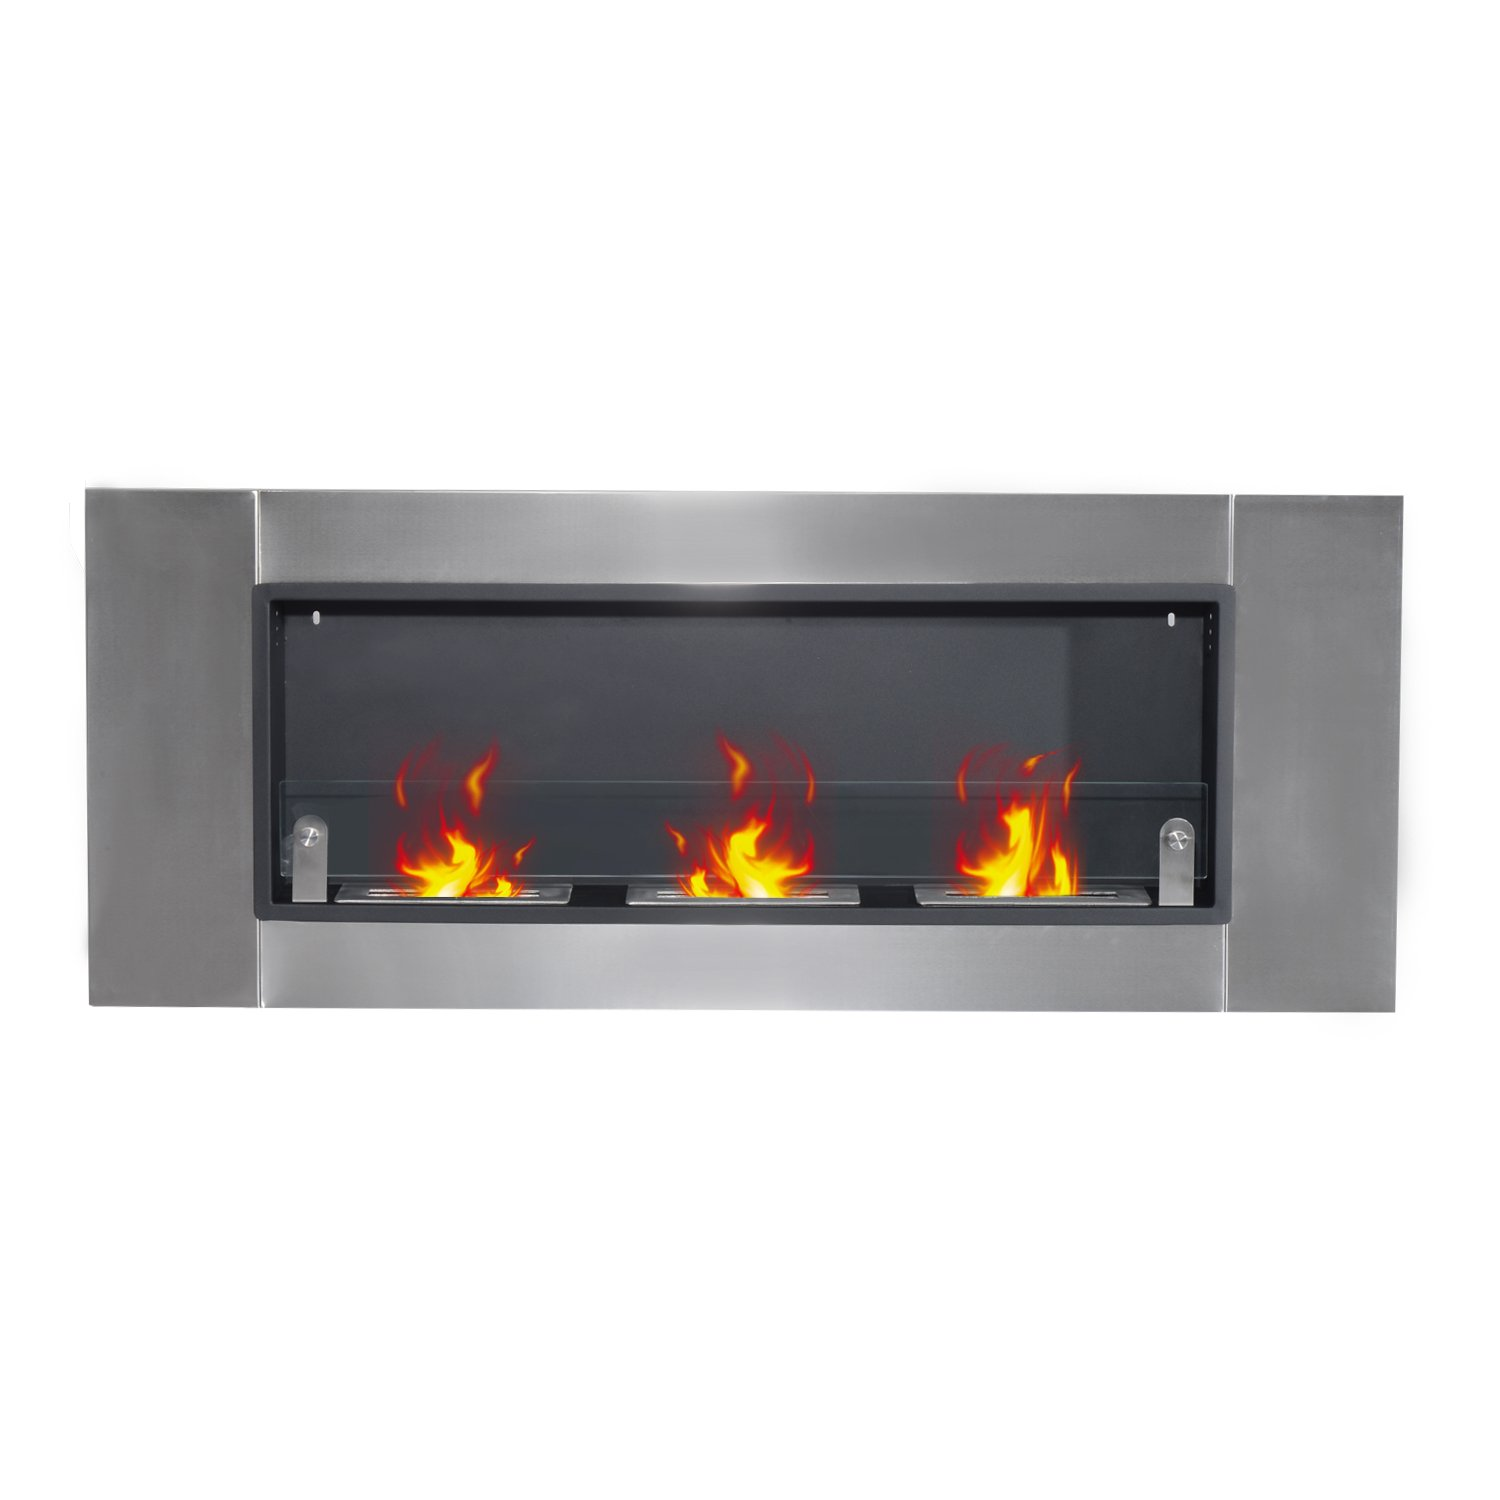 fireplace fuel image arch of gel fireplaces home black top wall mount fueled inserts mounted contemporary gas